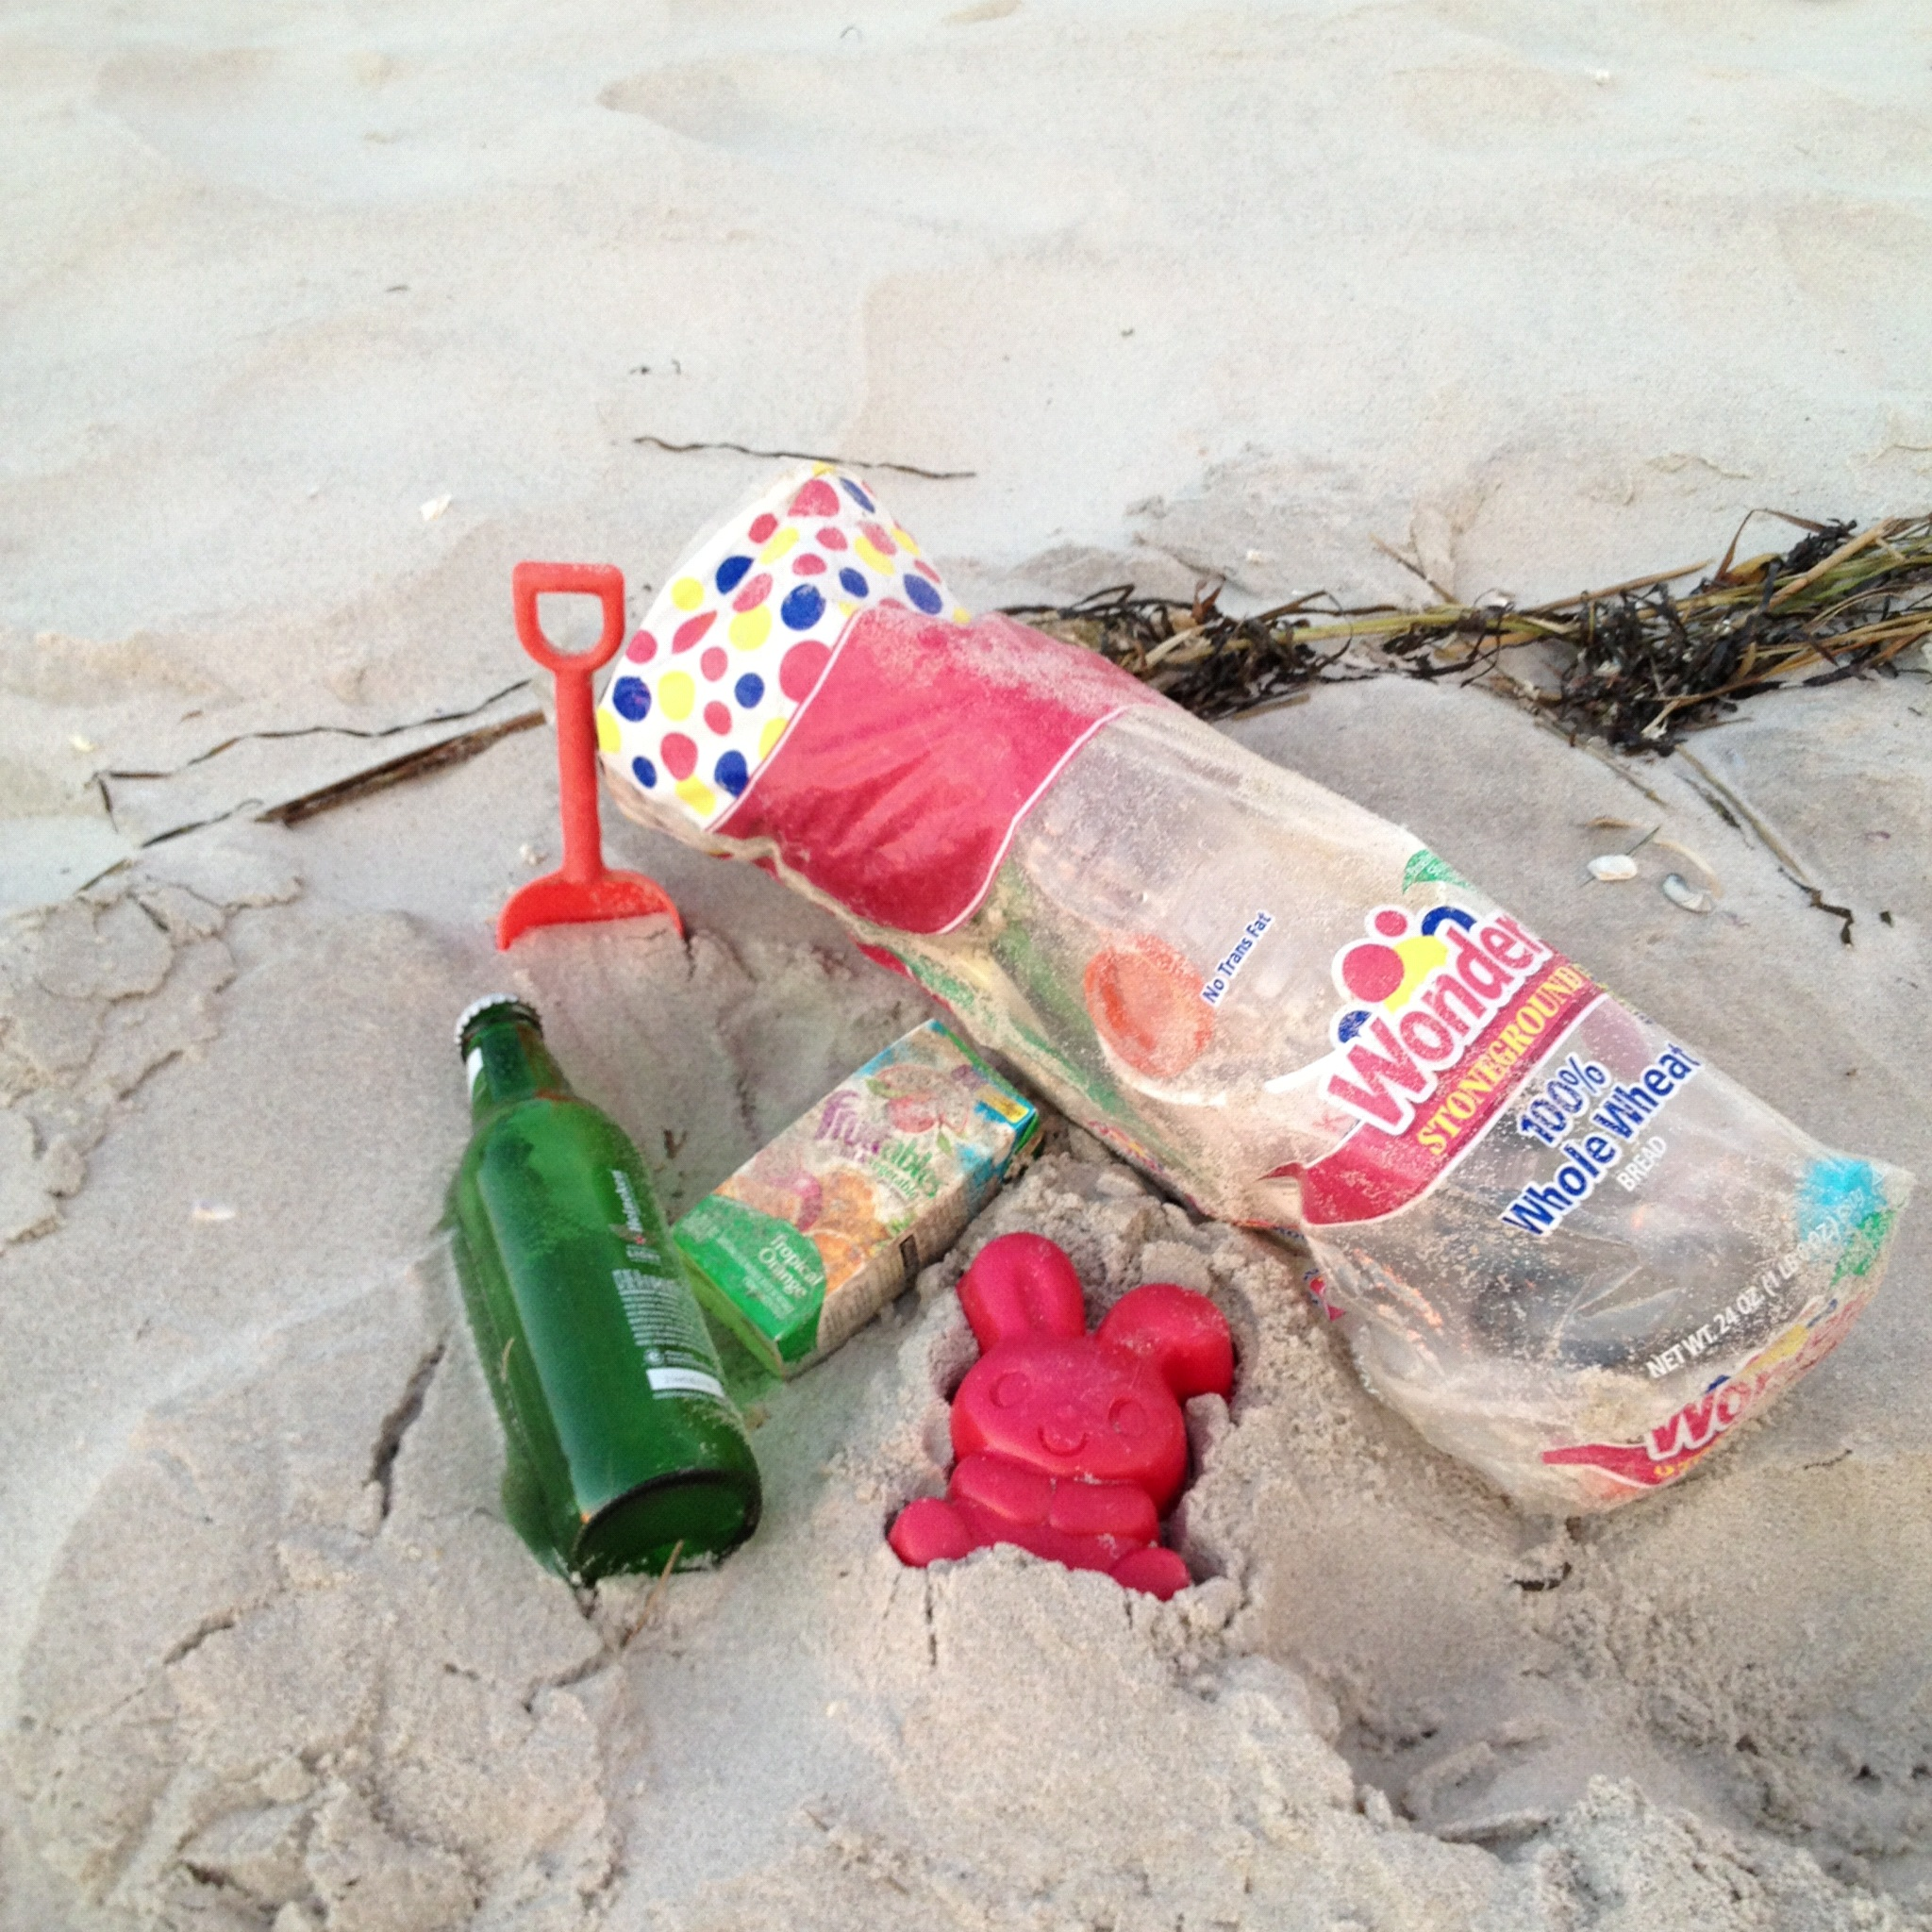 Act Now! NJ Plastics Bill Push